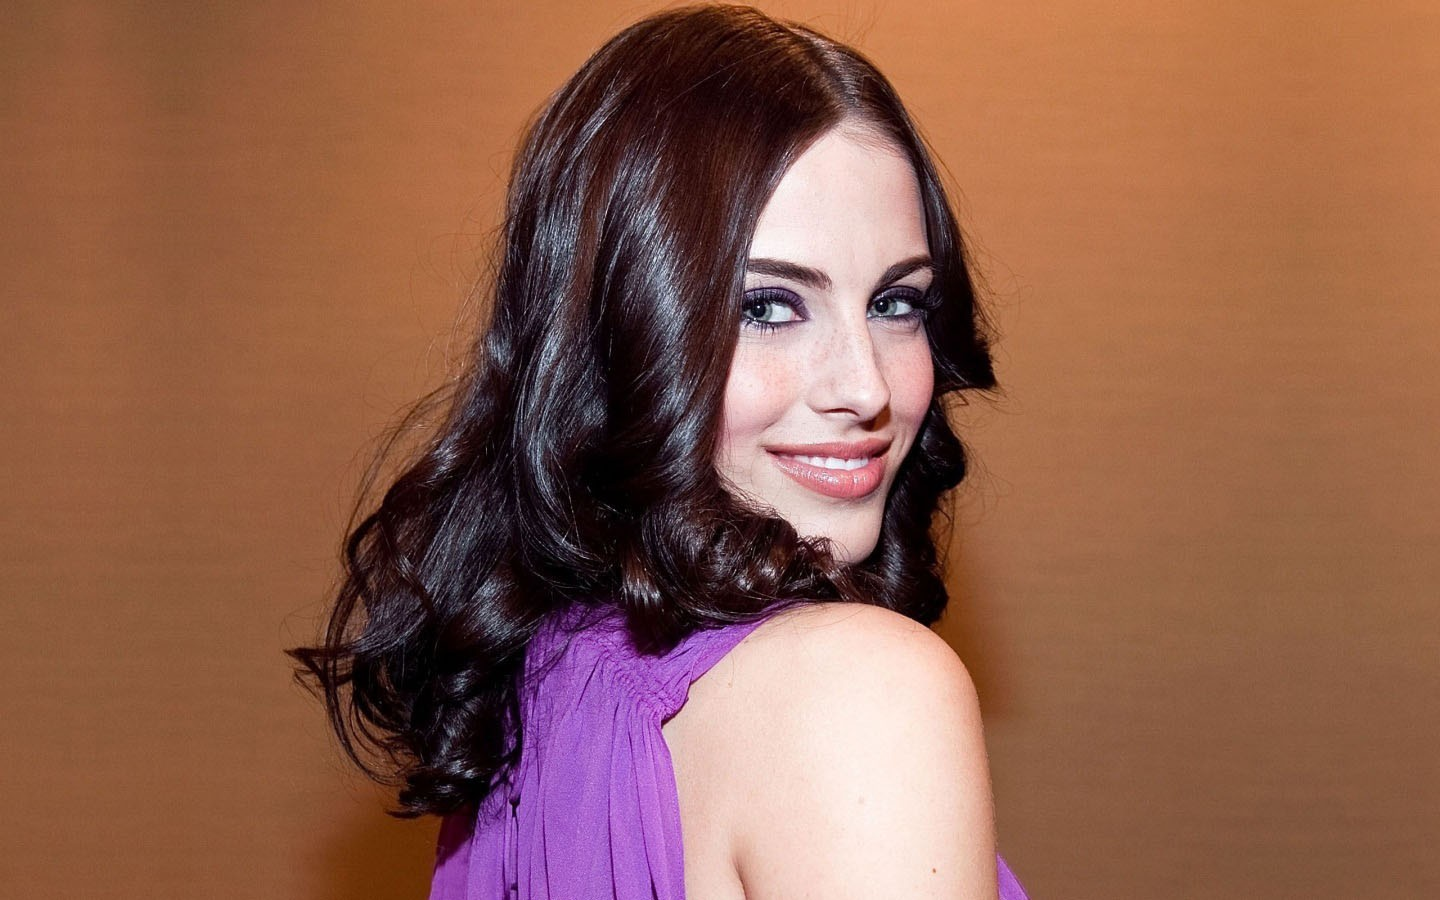 Smiling Jessica Lowndes on the light brown color background